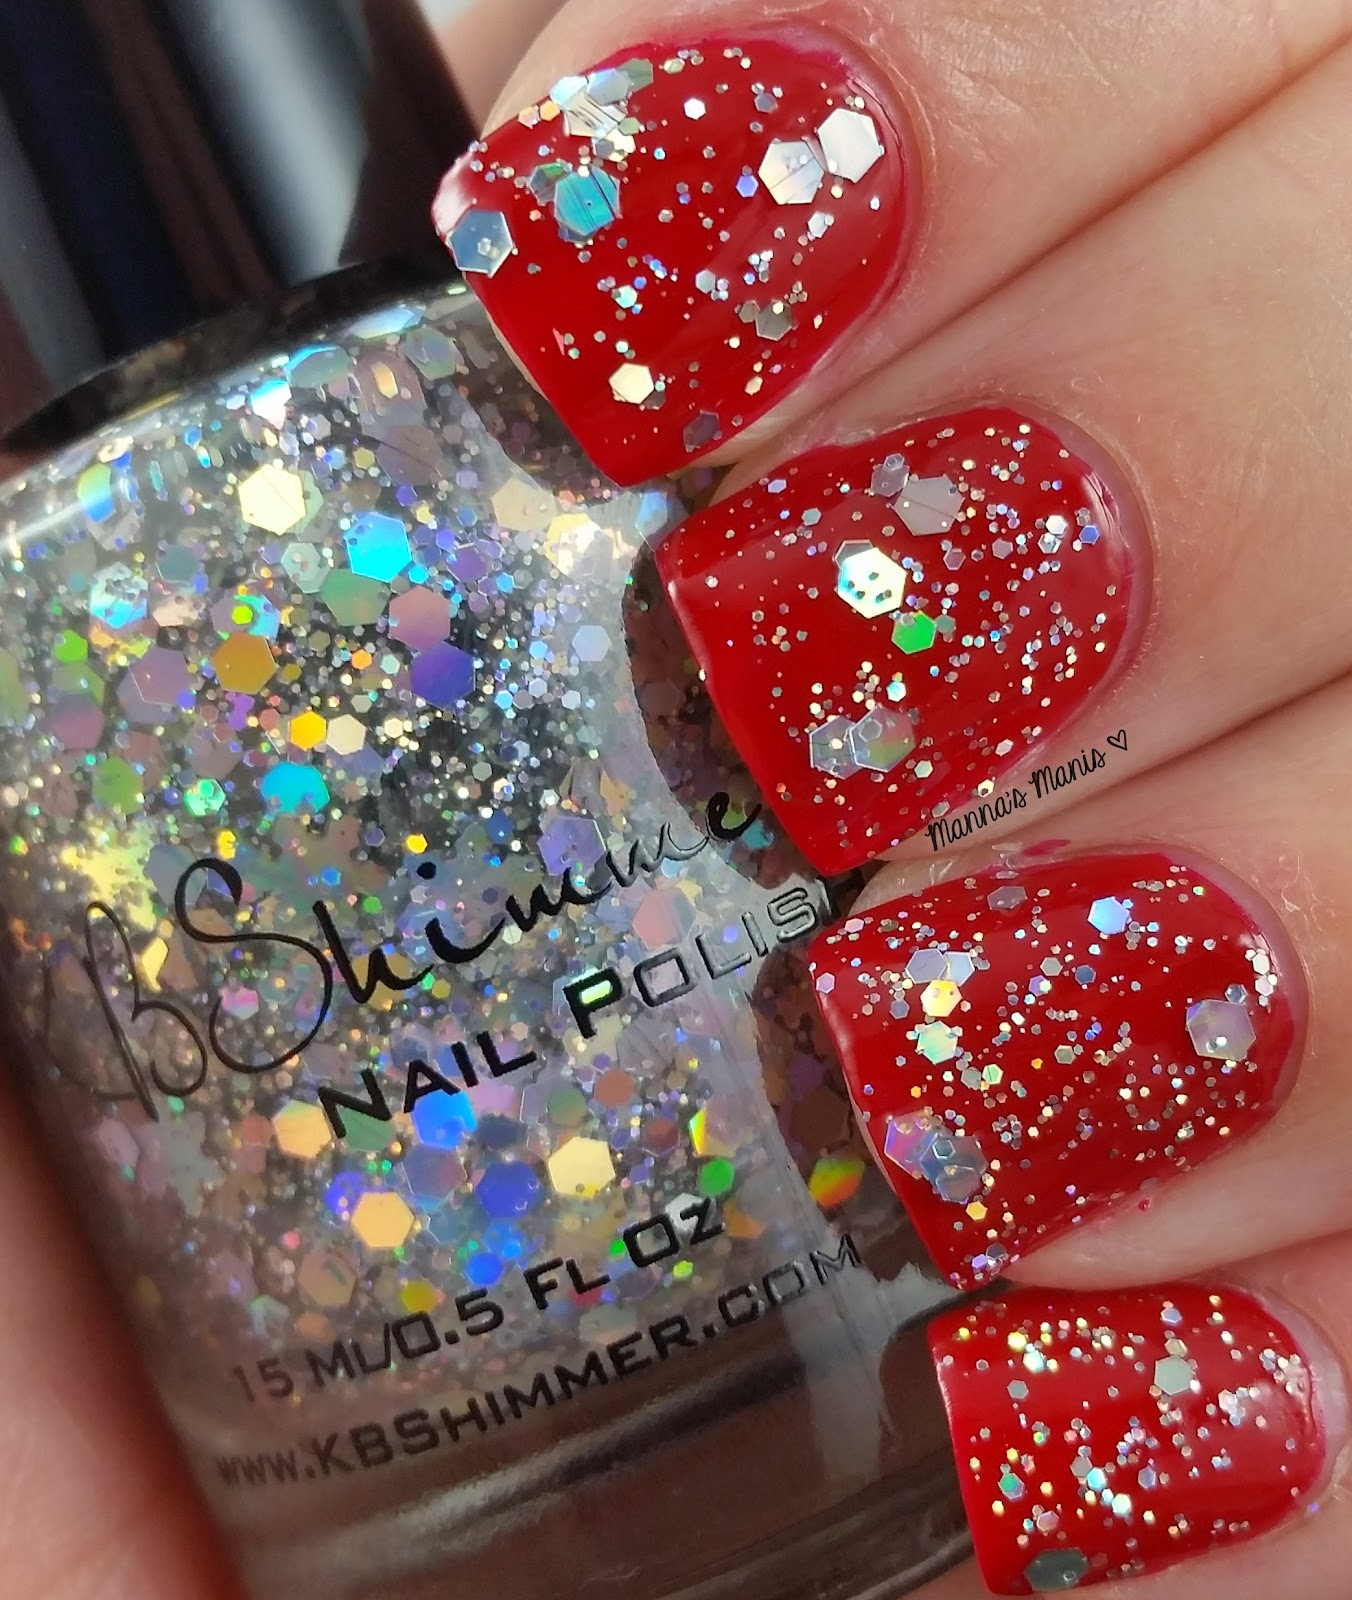 kbshimmer flake dance, a holographic snowflake glitter nail polish